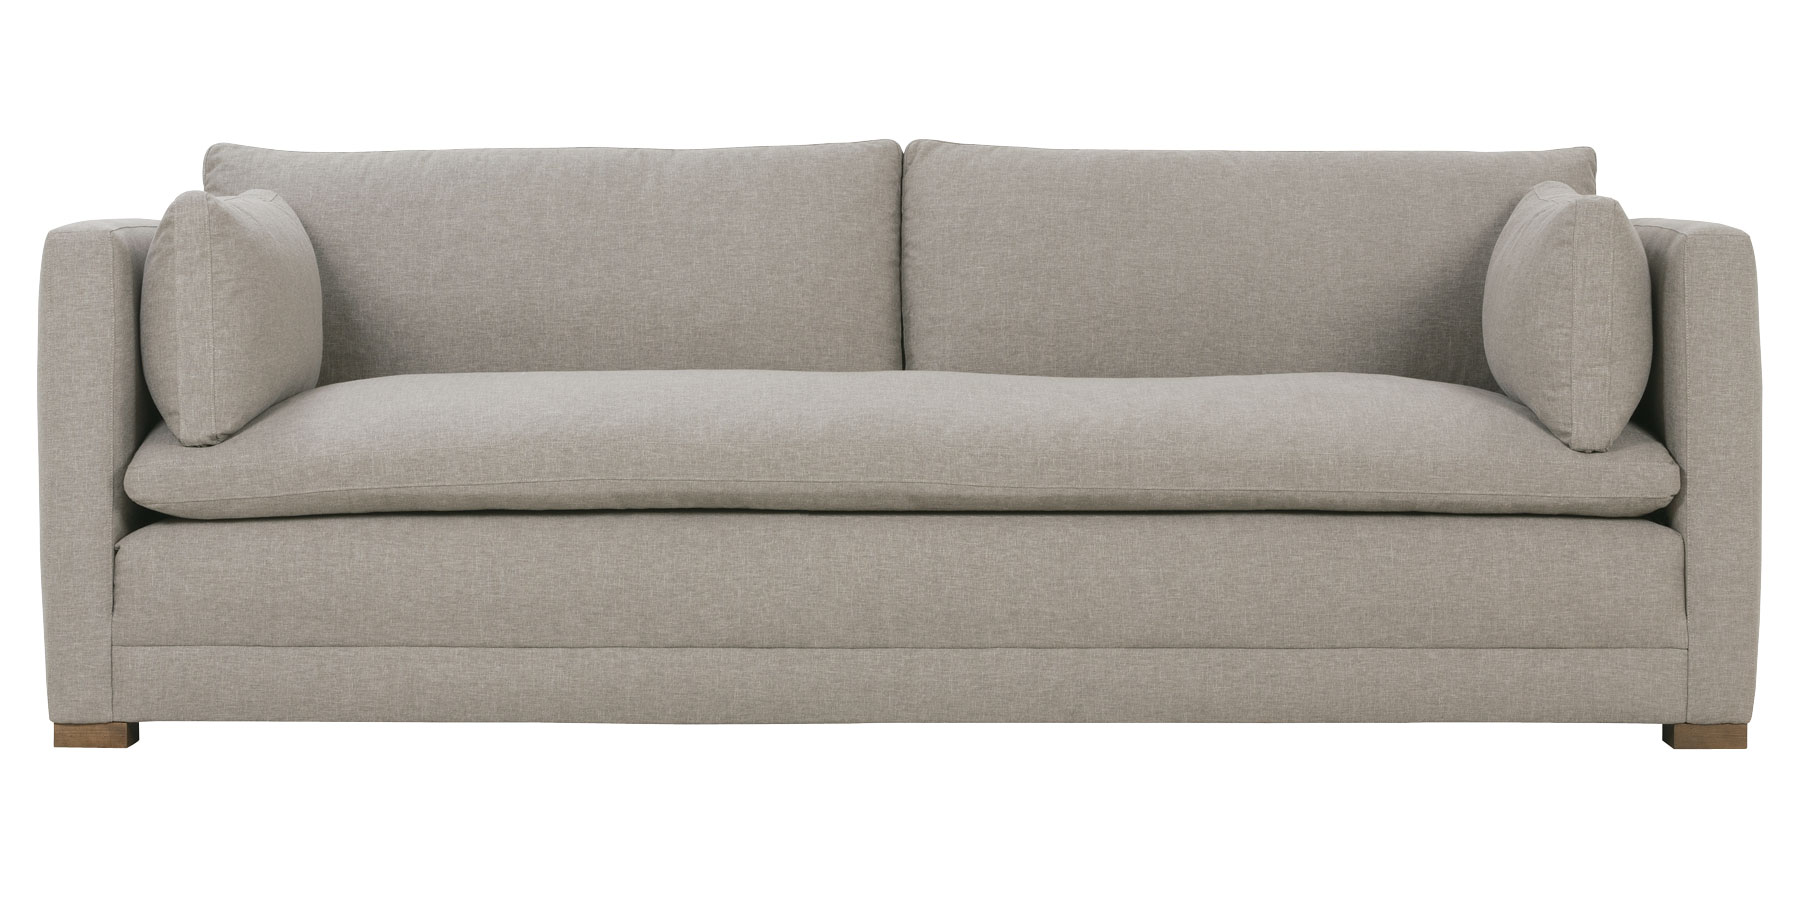 Bench seat sofa for Trendy furniture